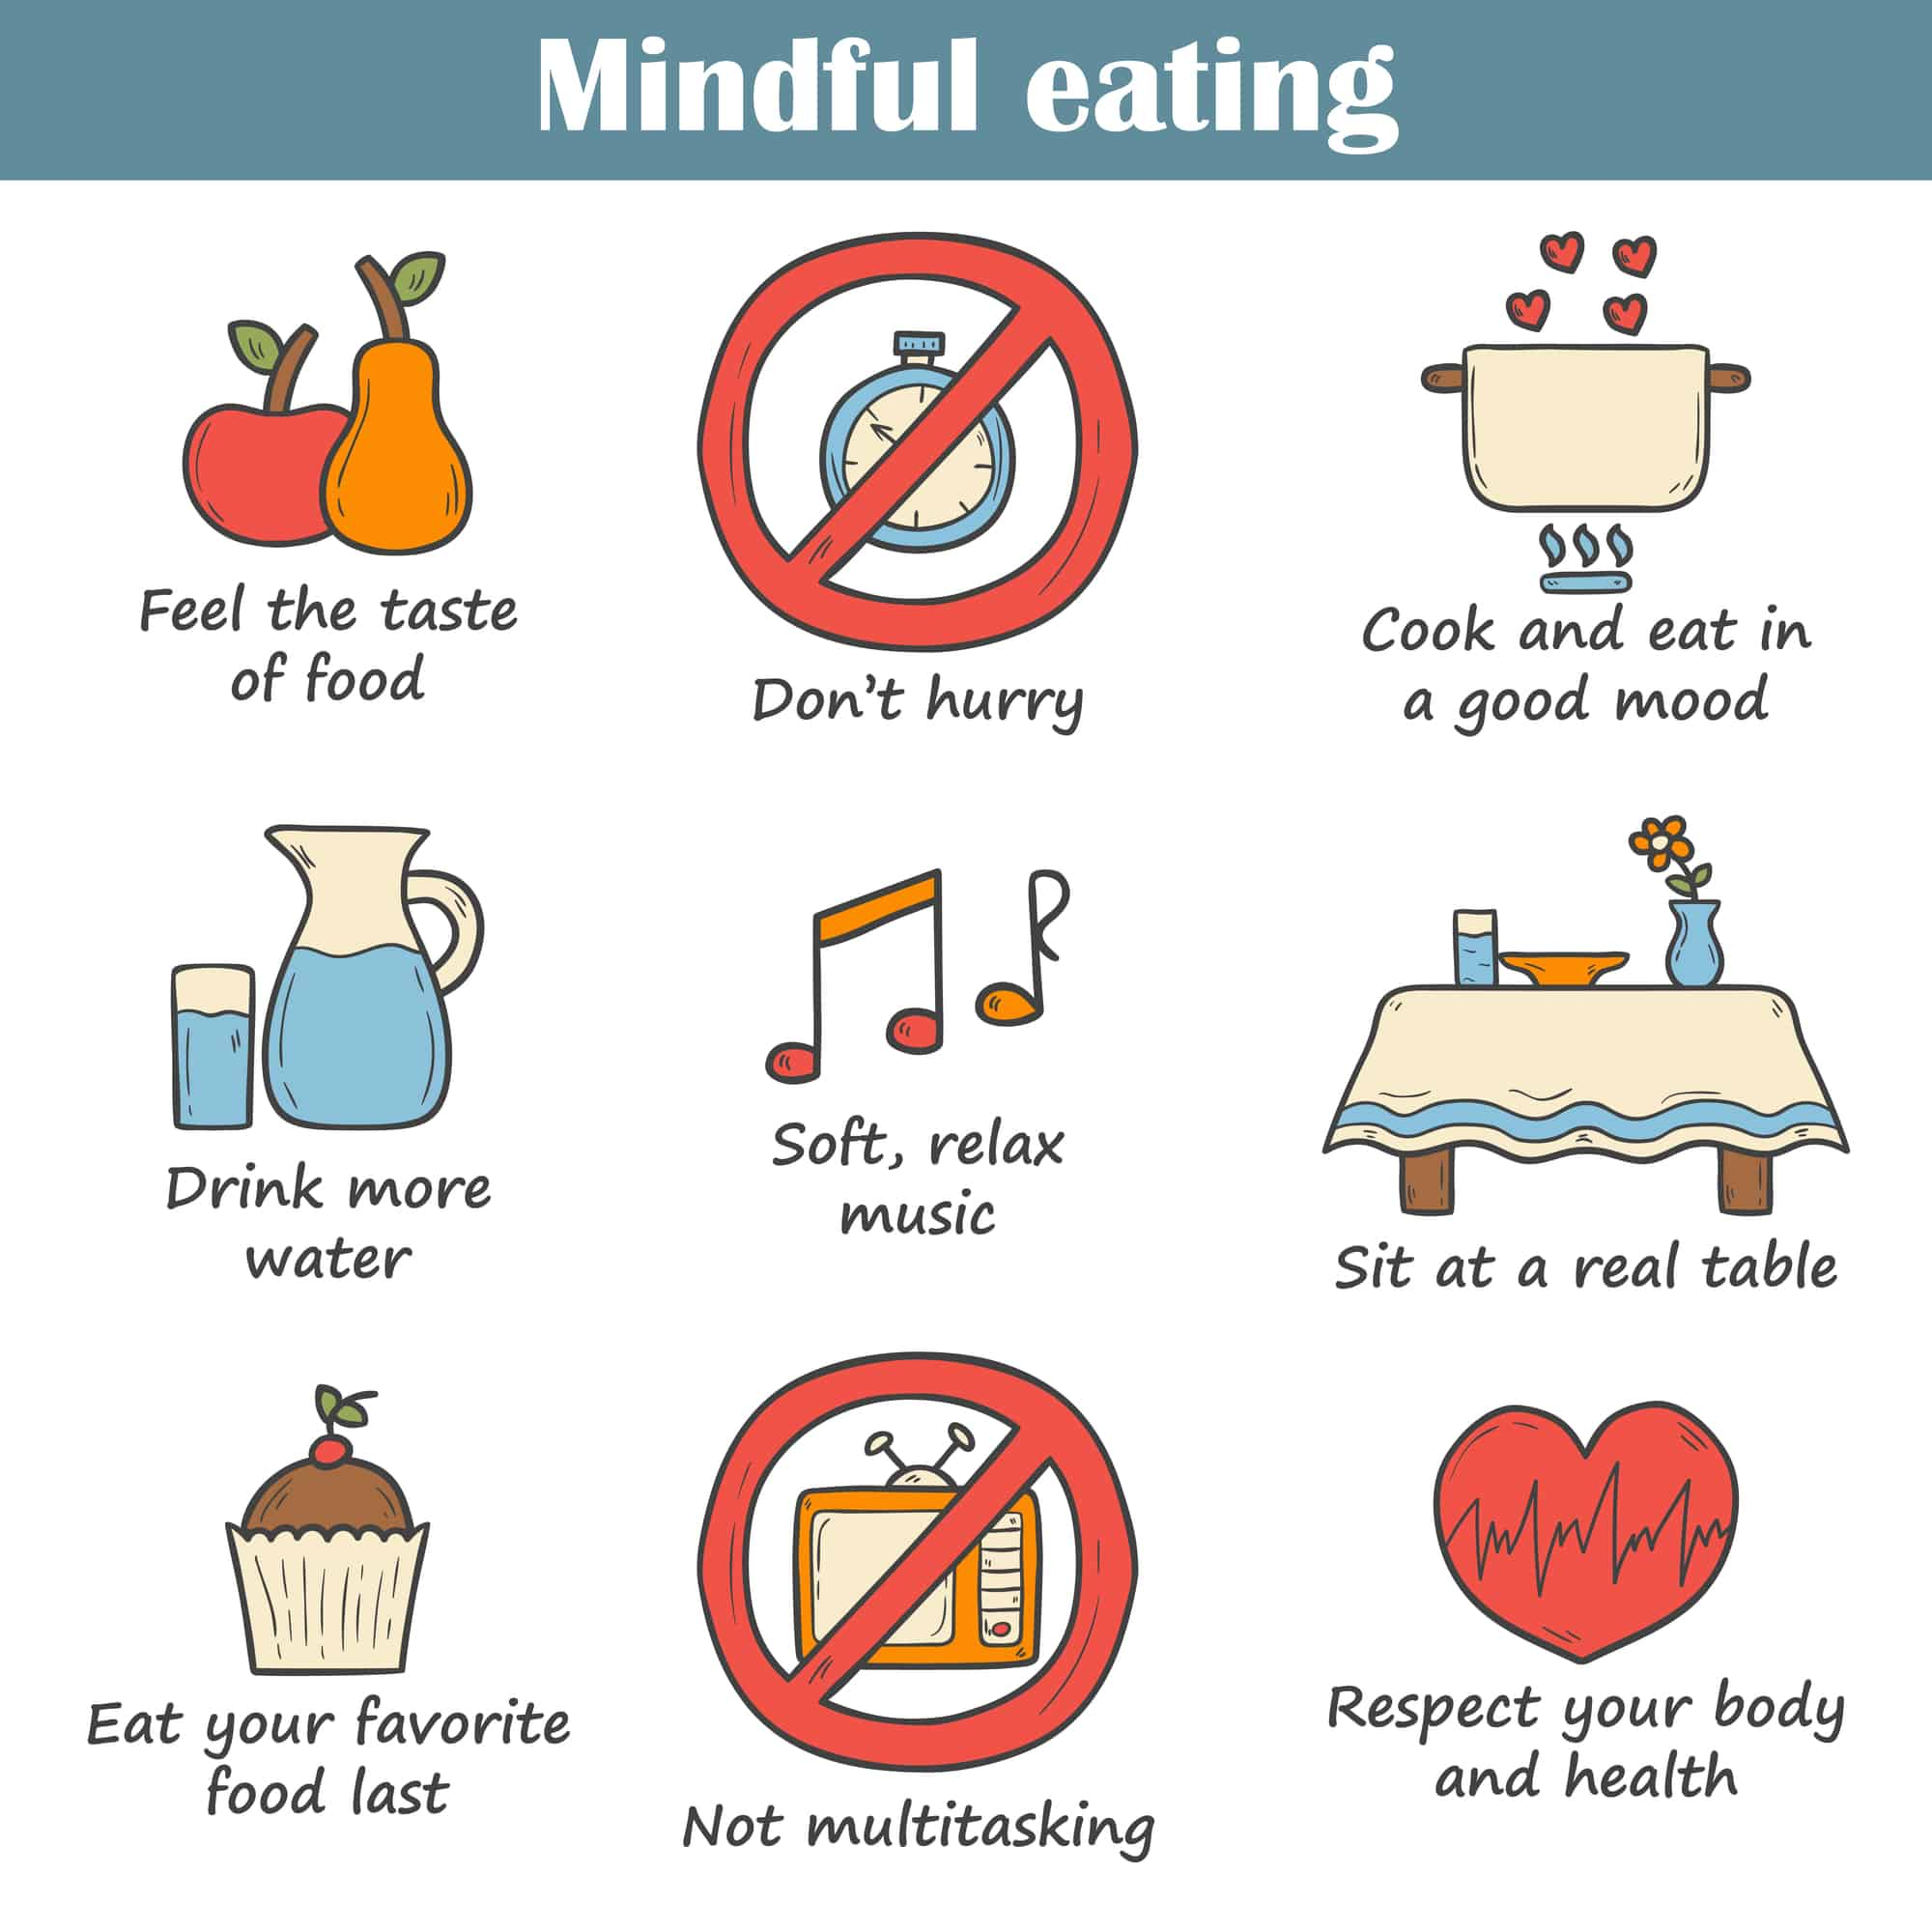 10 Rules Of Mindful Eating